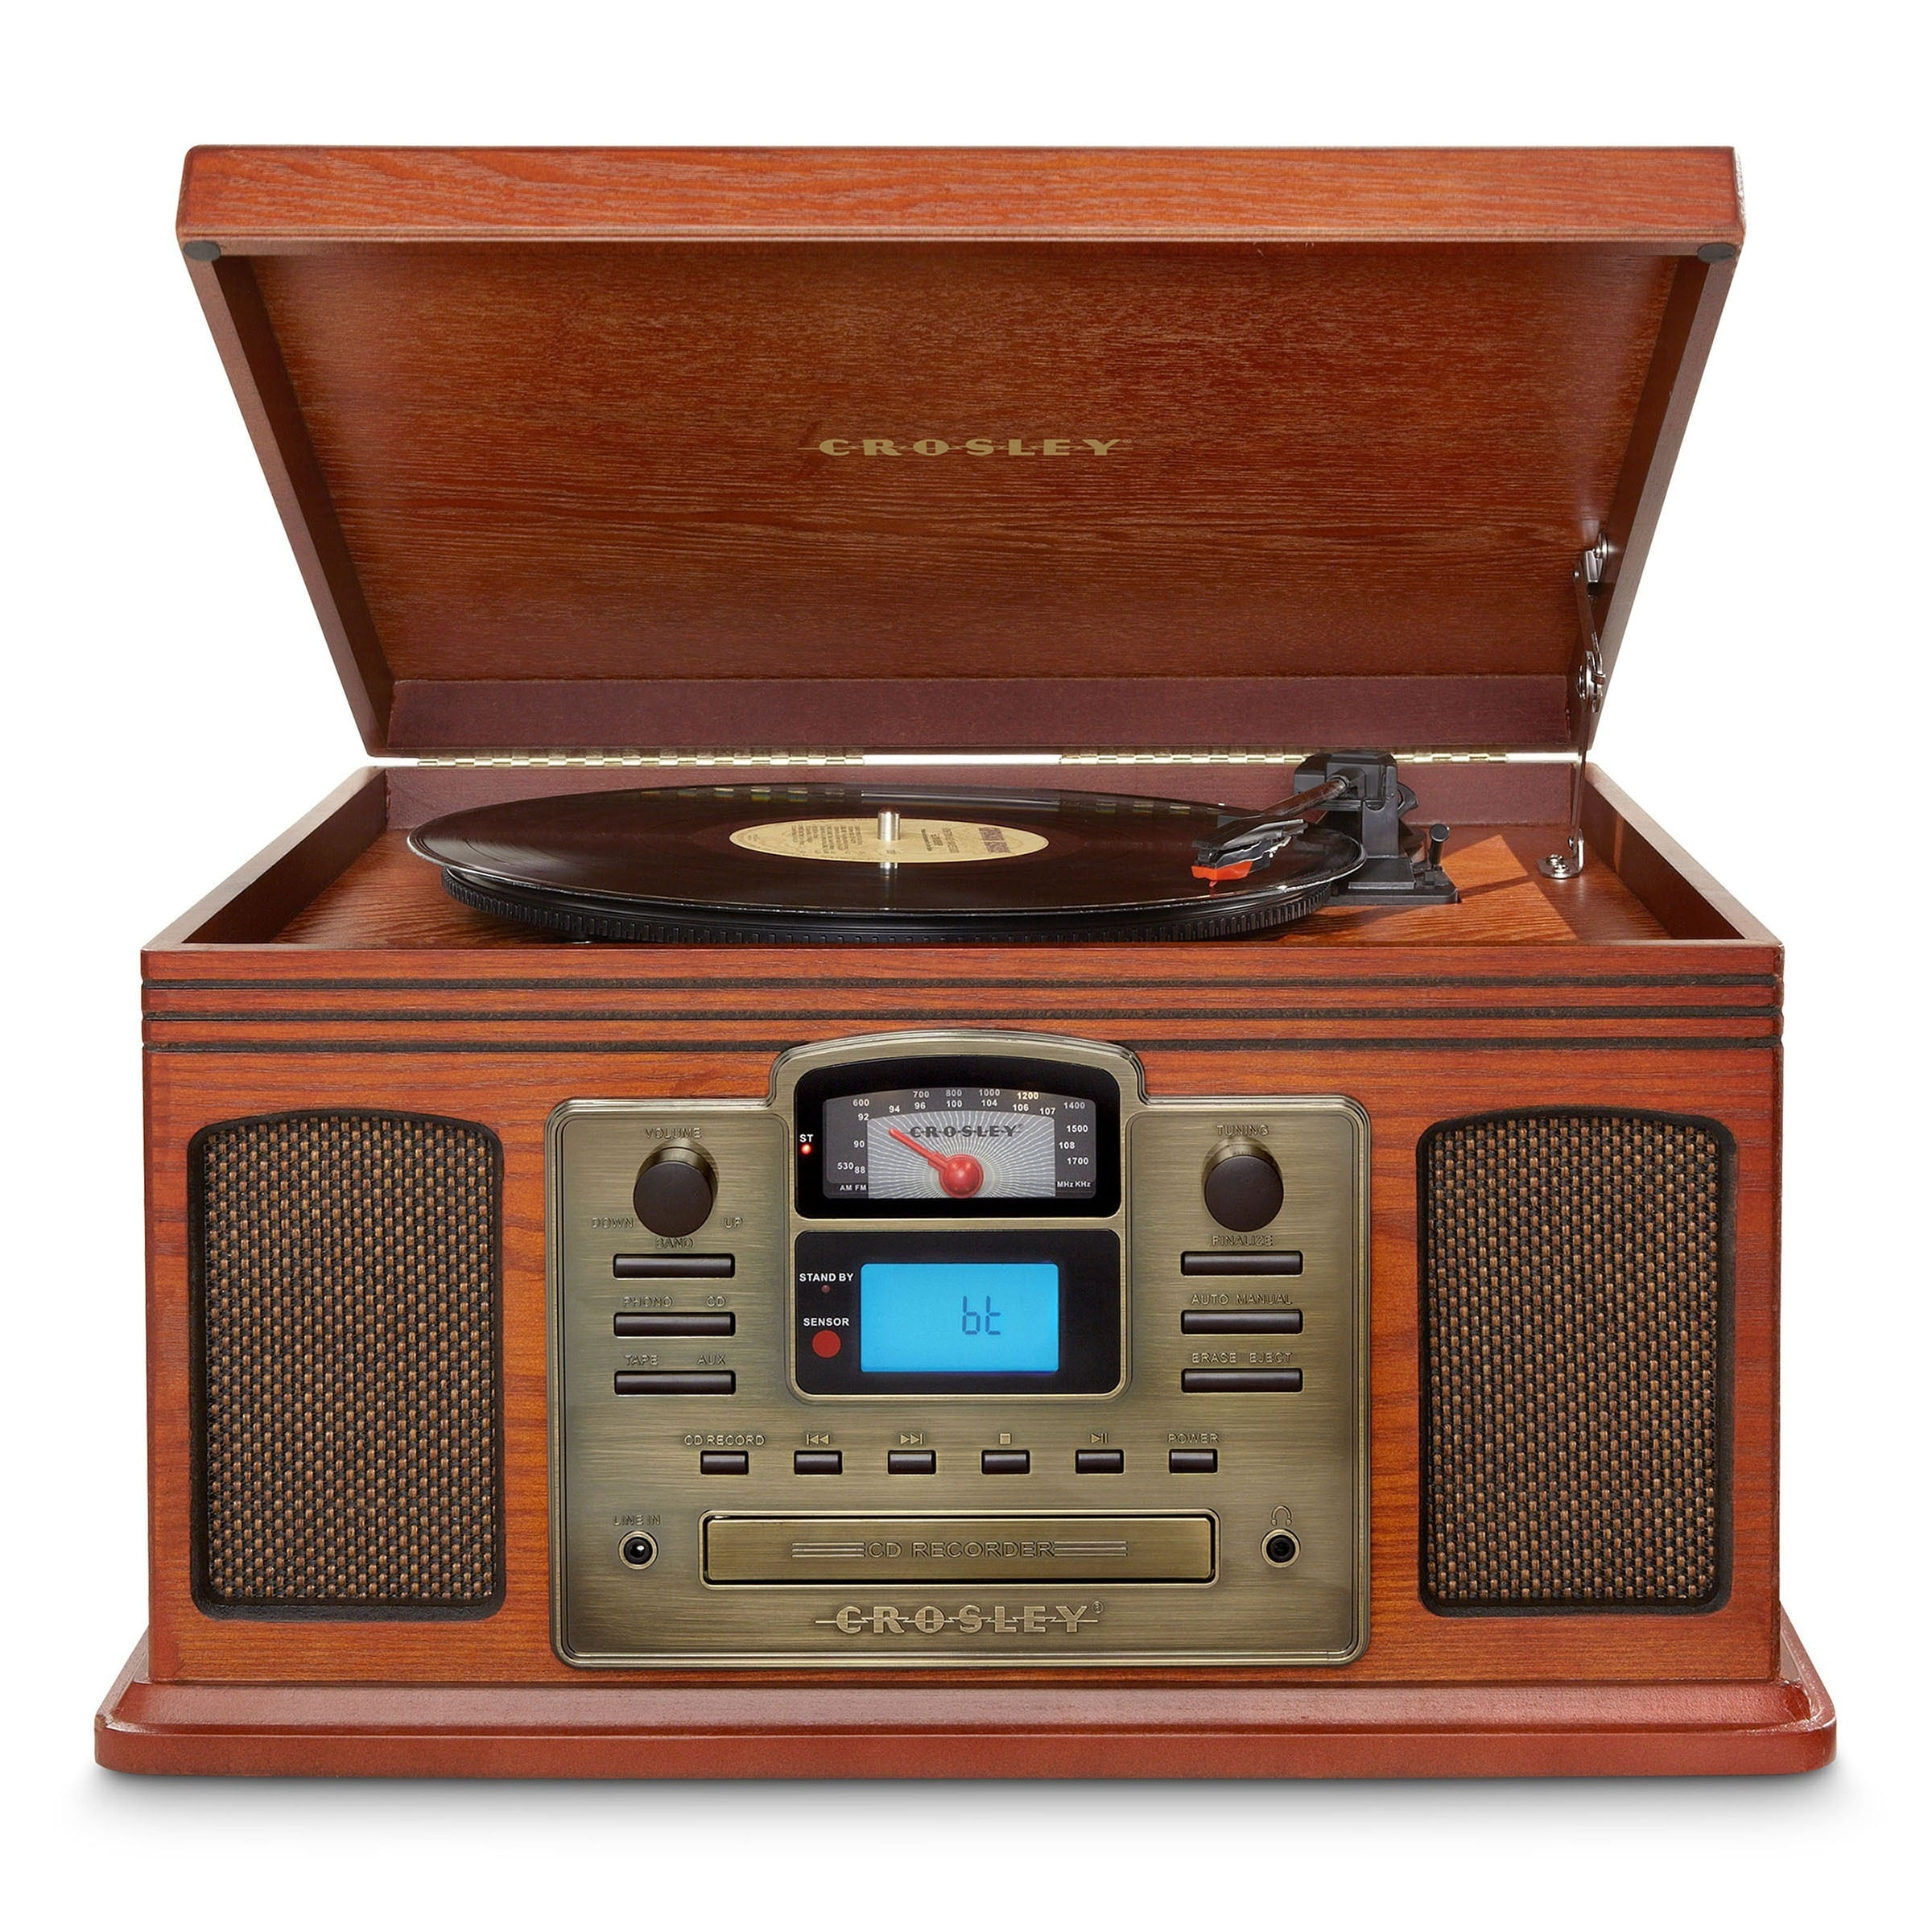 Crosley Radio Director Cd Recorder With Bluetooth, Brown ...